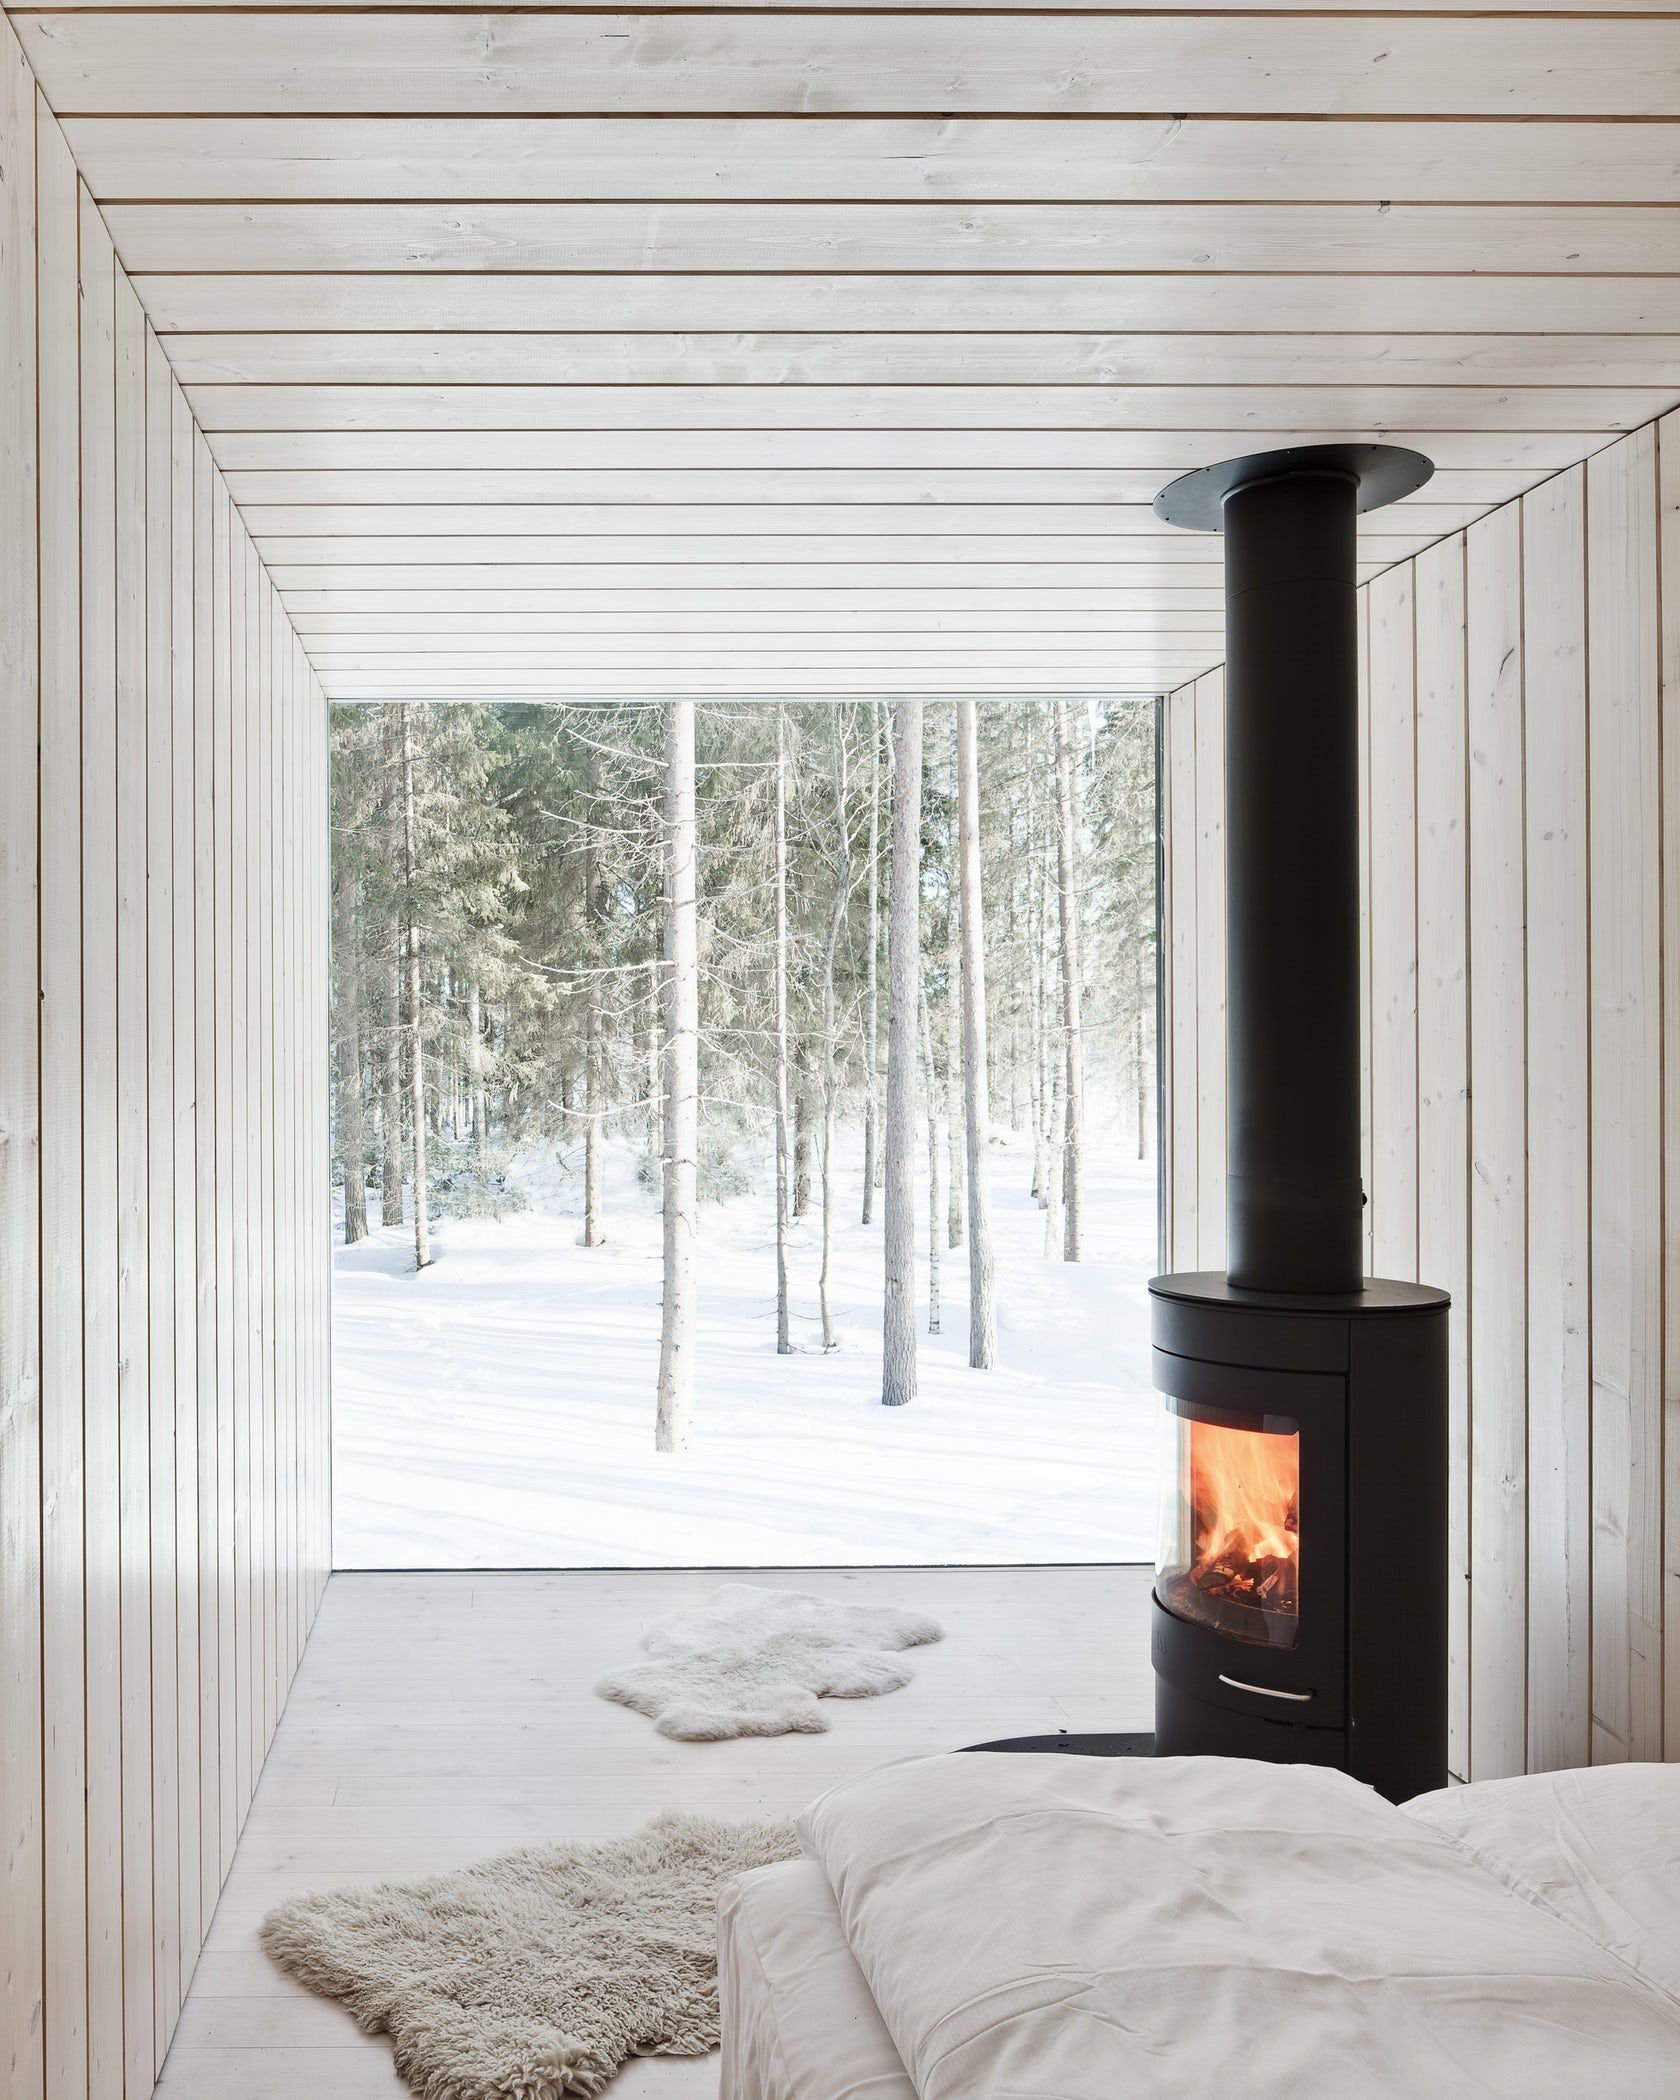 93 Awesome Free Standing Propane Fireplace In 2020 My Scandinavian Home Modern Cabin Scandinavian Home